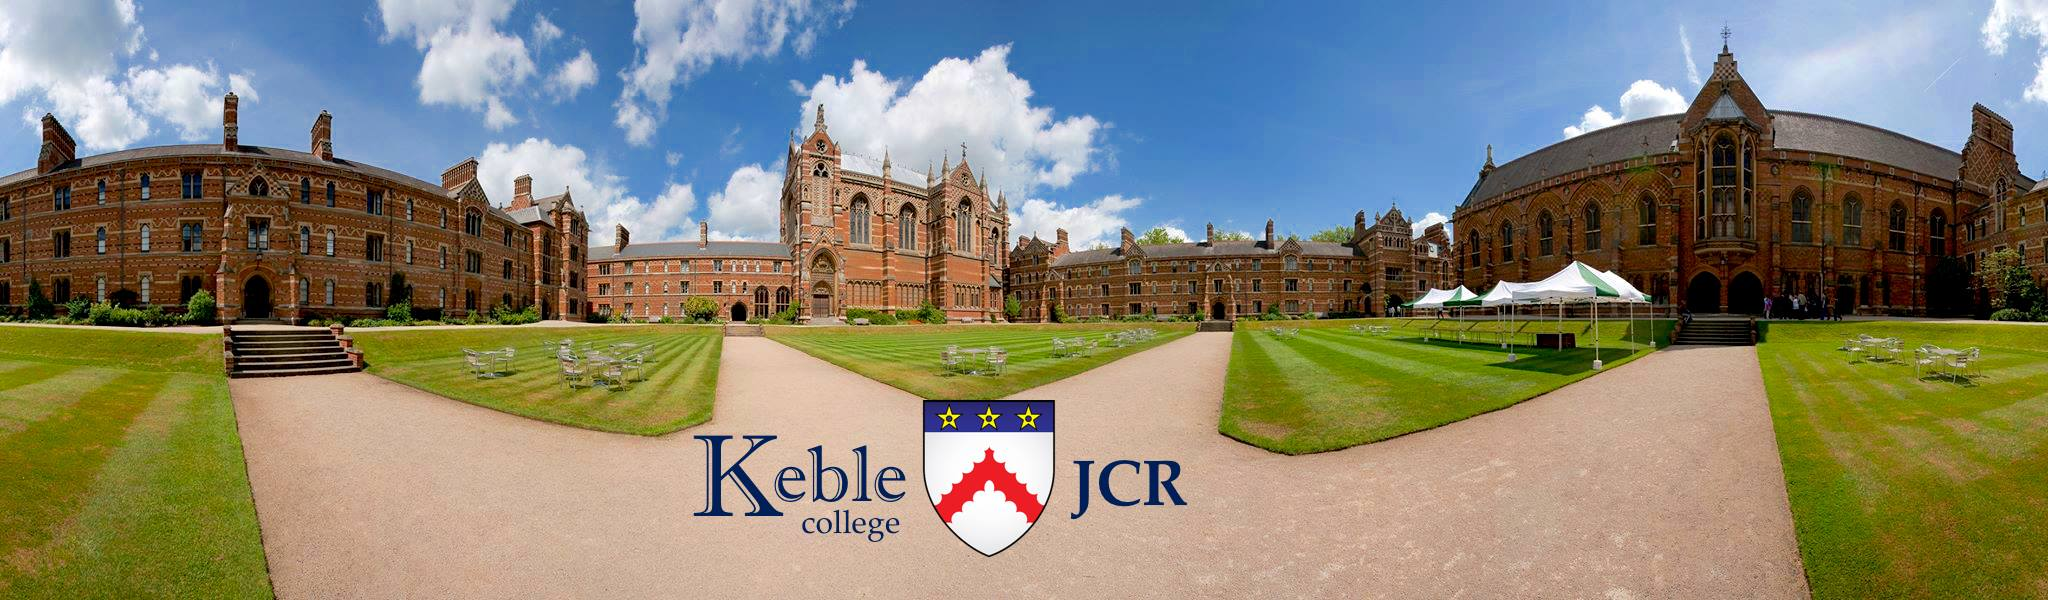 Keble College JCR